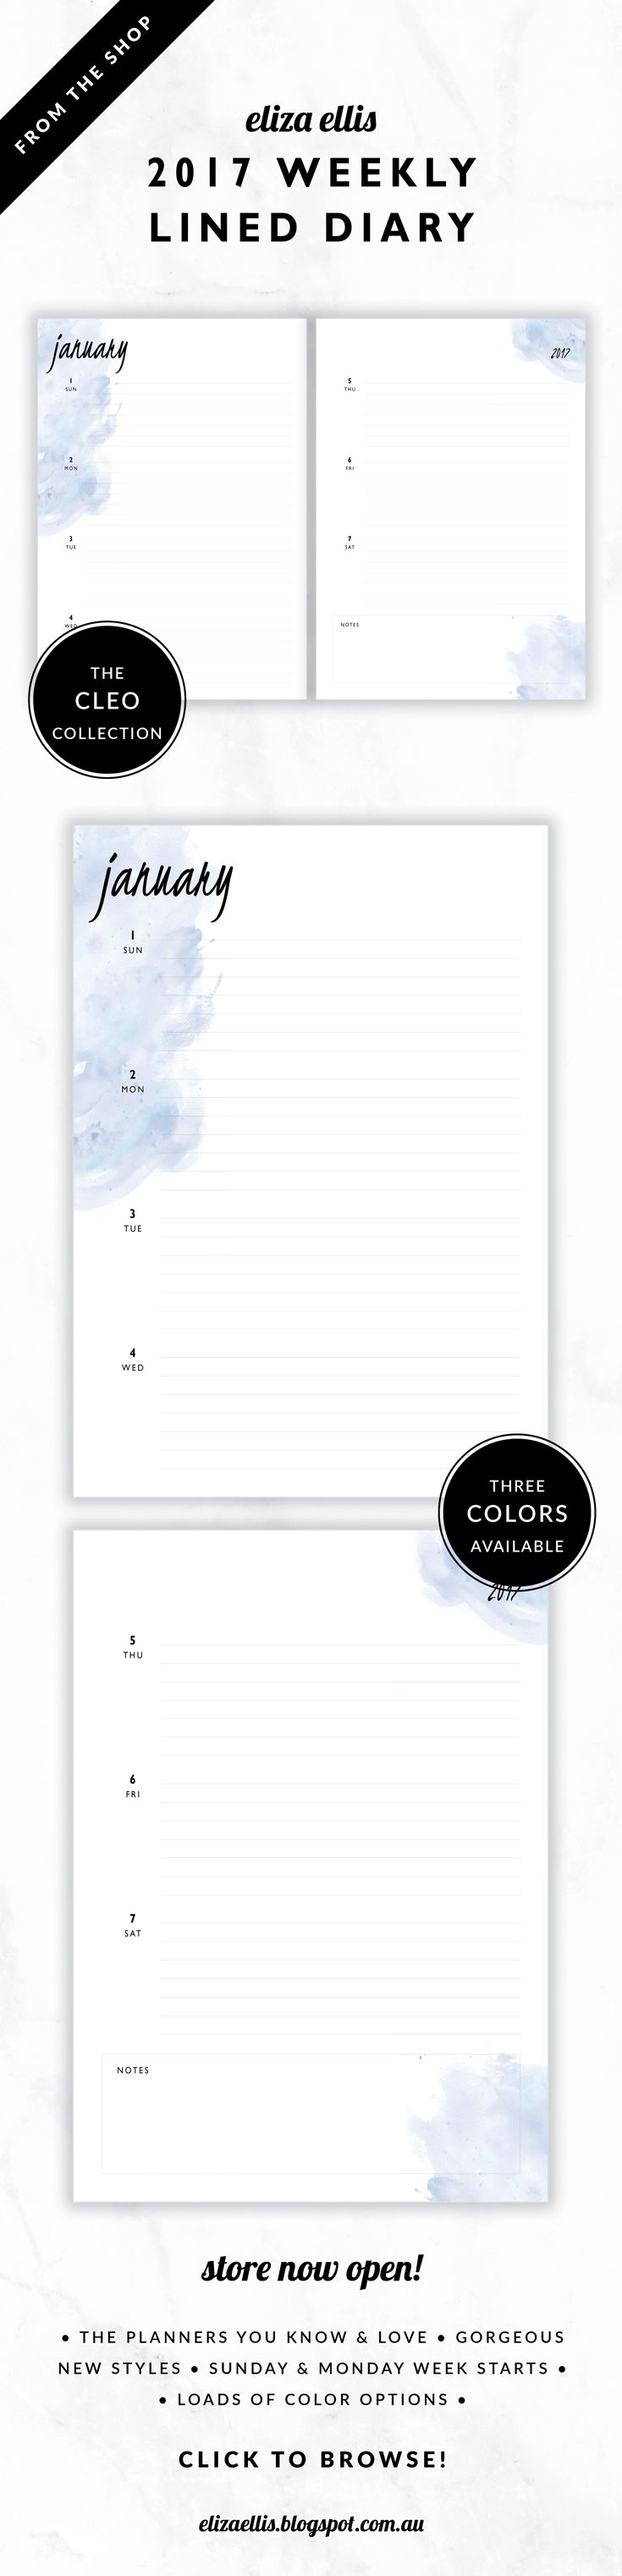 2017 Lined Weekly Diary Planner // The Cleo Collection by Eliza Ellis. Gorgeous watercolor and handwritten type design. Available in 3 colors – fairyfloss, nimbus and sherbet. Monday and Sunday week starts included. Documents print to A4 or A5.